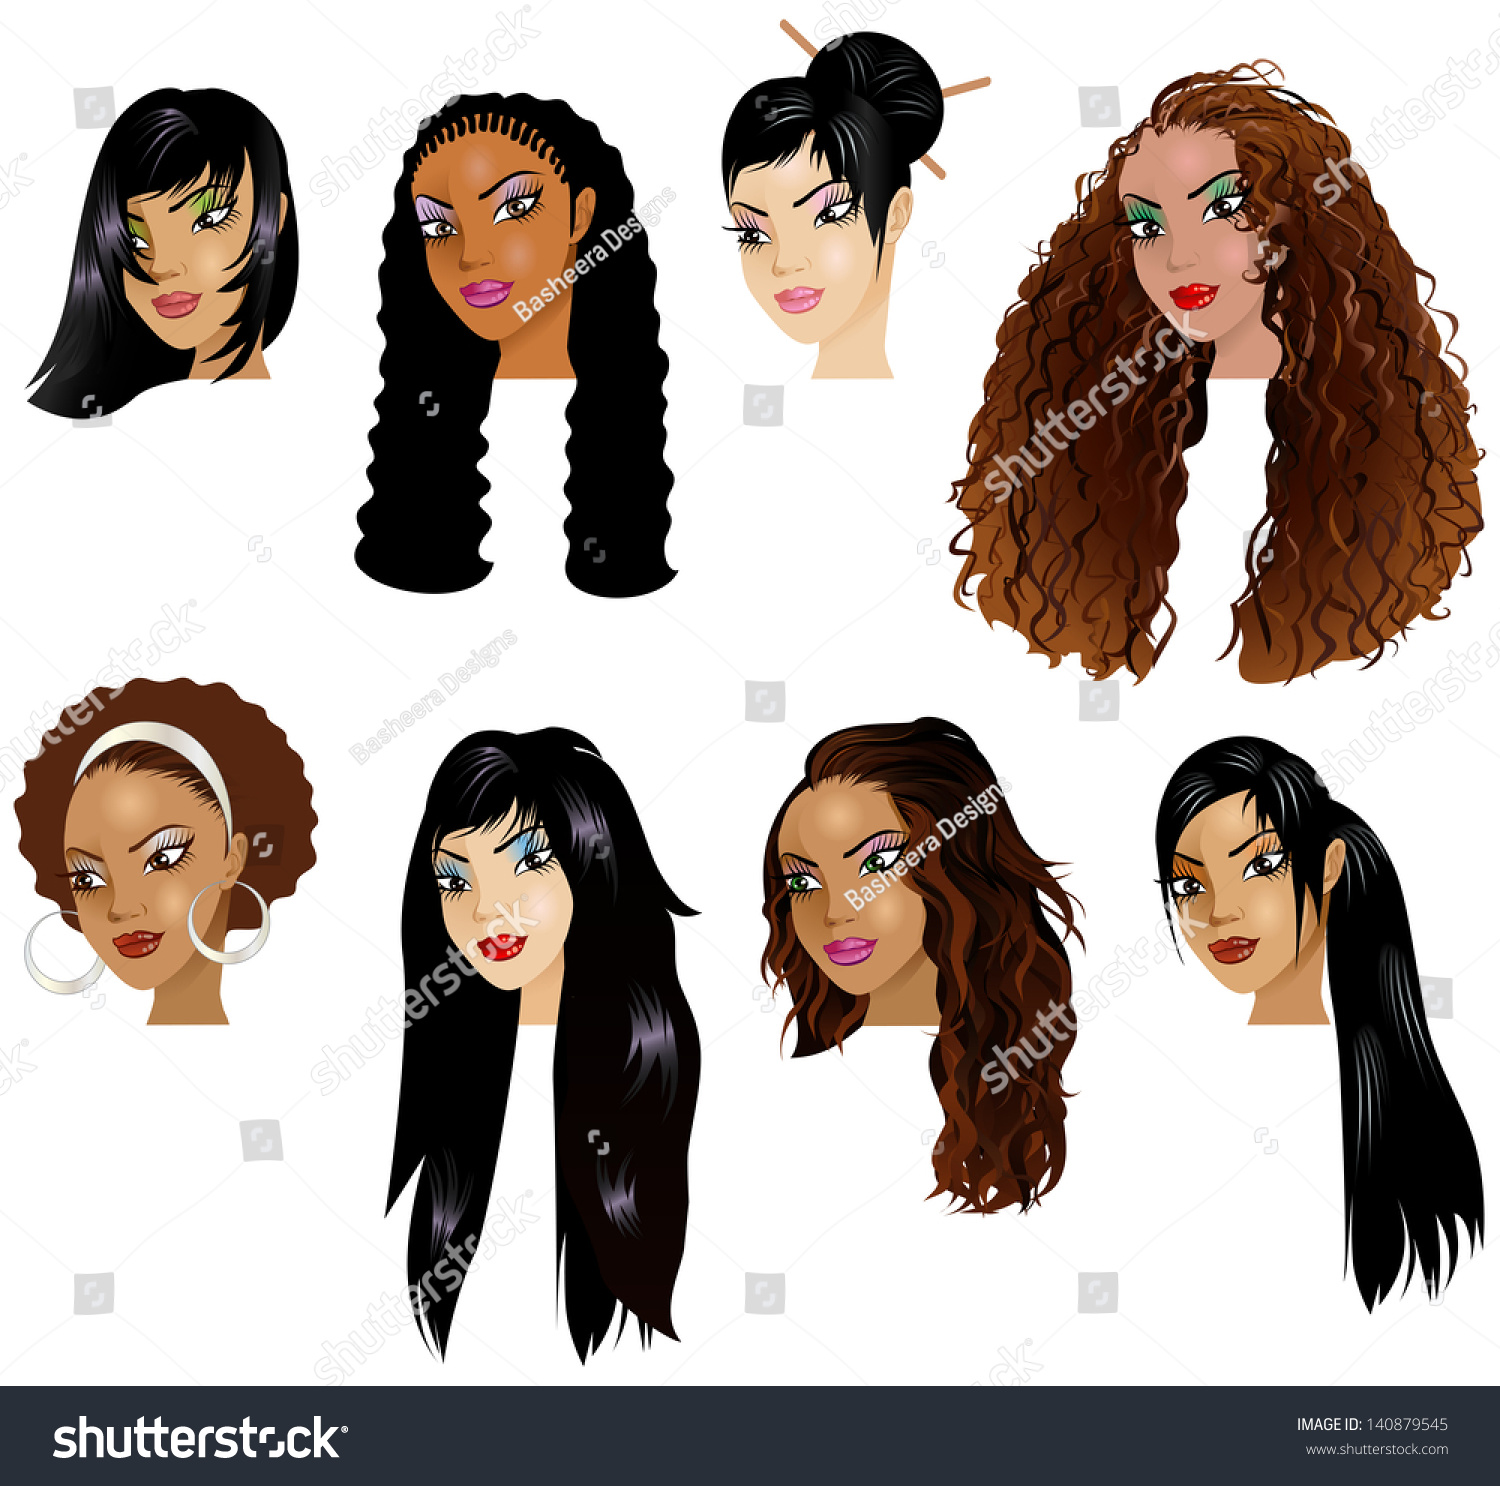 Image result for vector illustration of black women